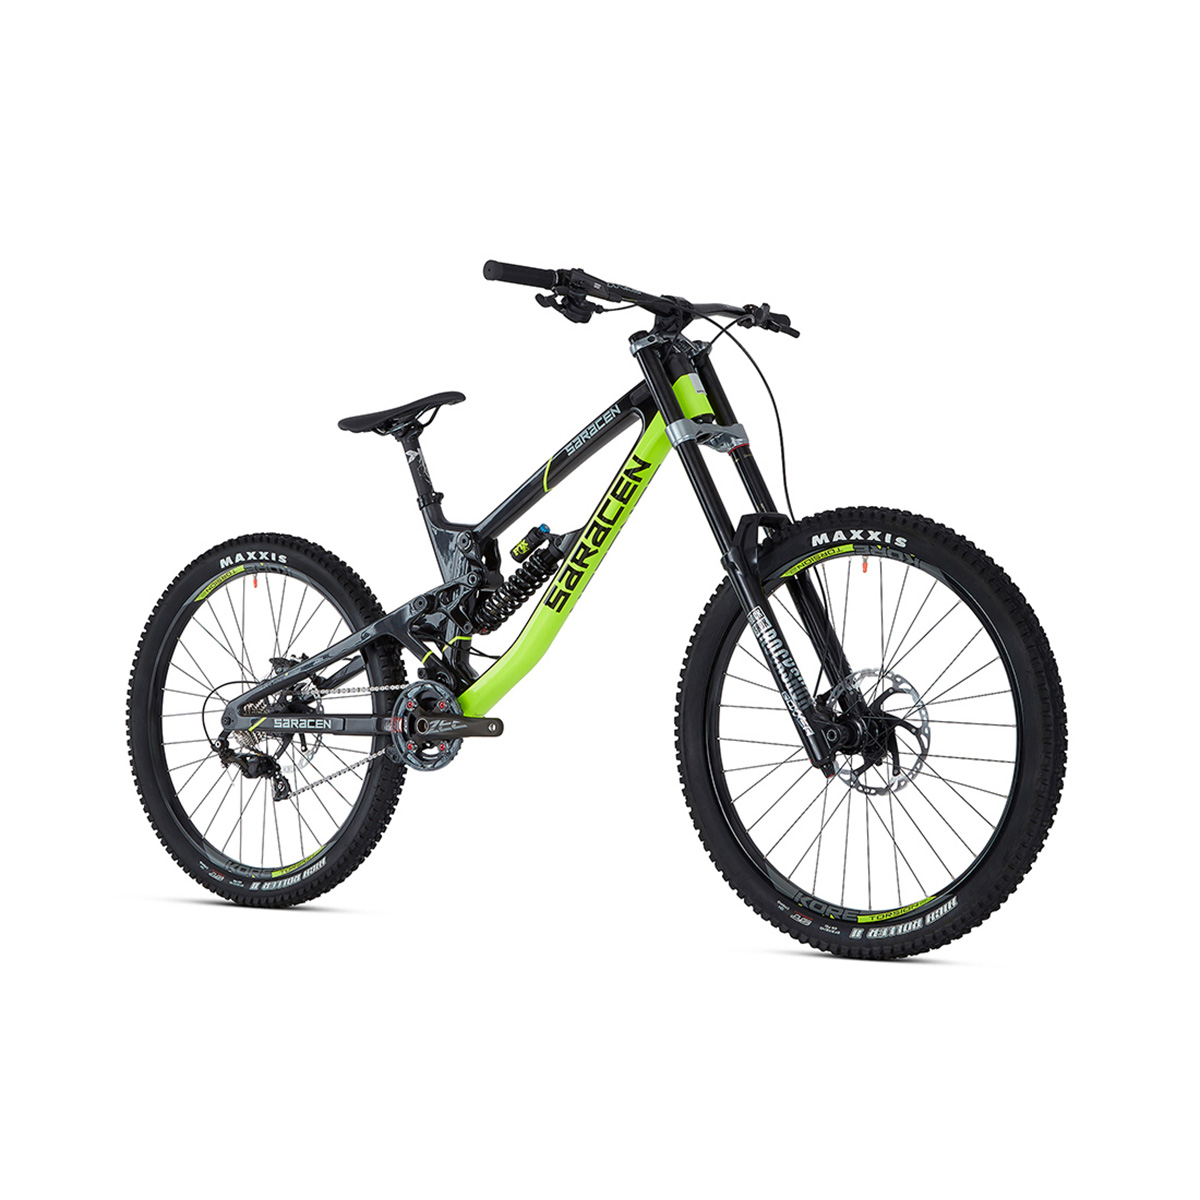 b89000f0c0b 2019 Saracen Myst Pro Mountain Bike £3,899.99